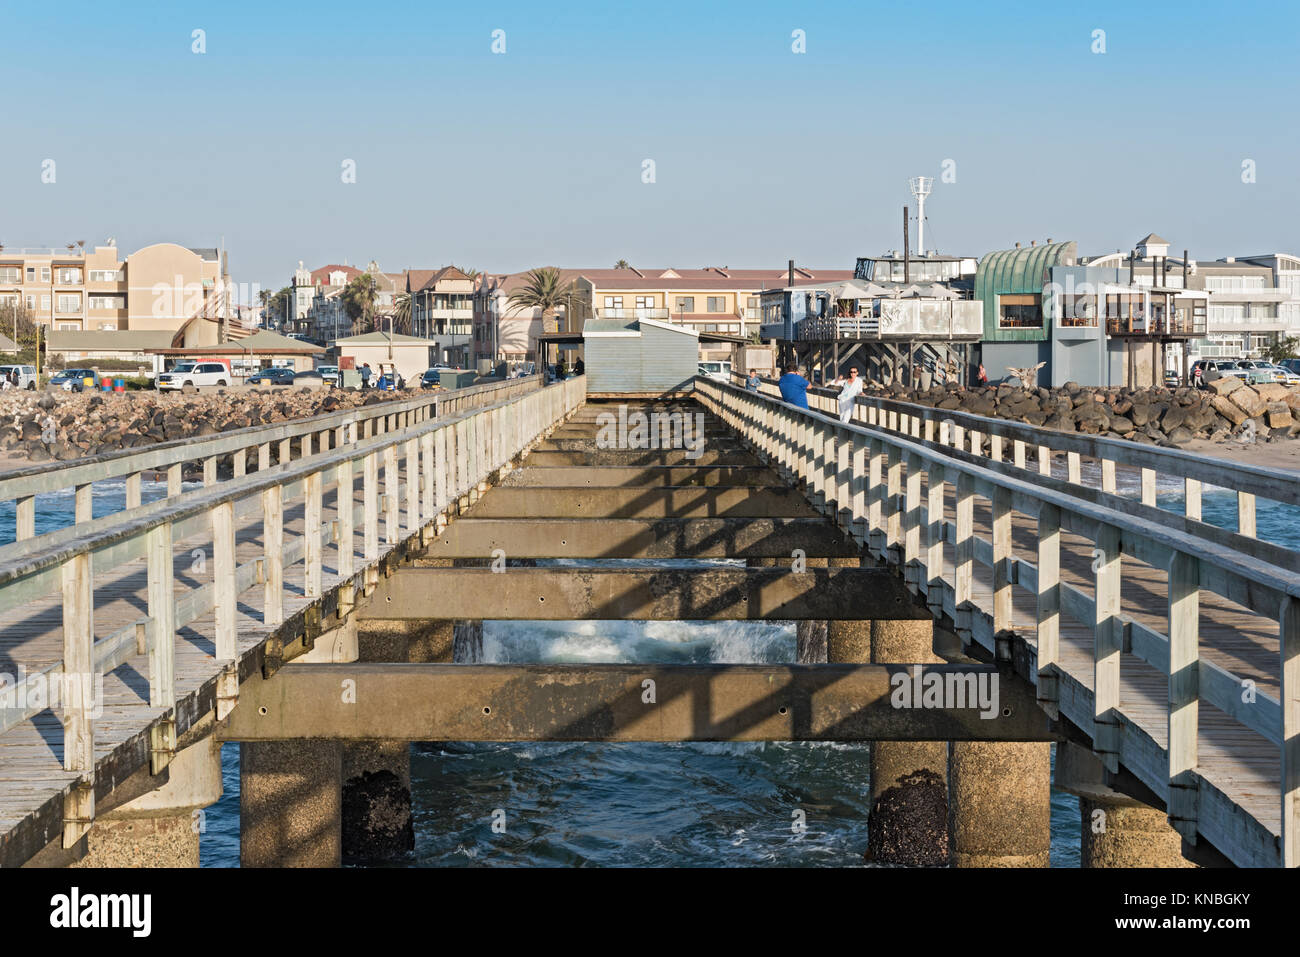 The historic jetty of Swakopmund, Namibia - Stock Image